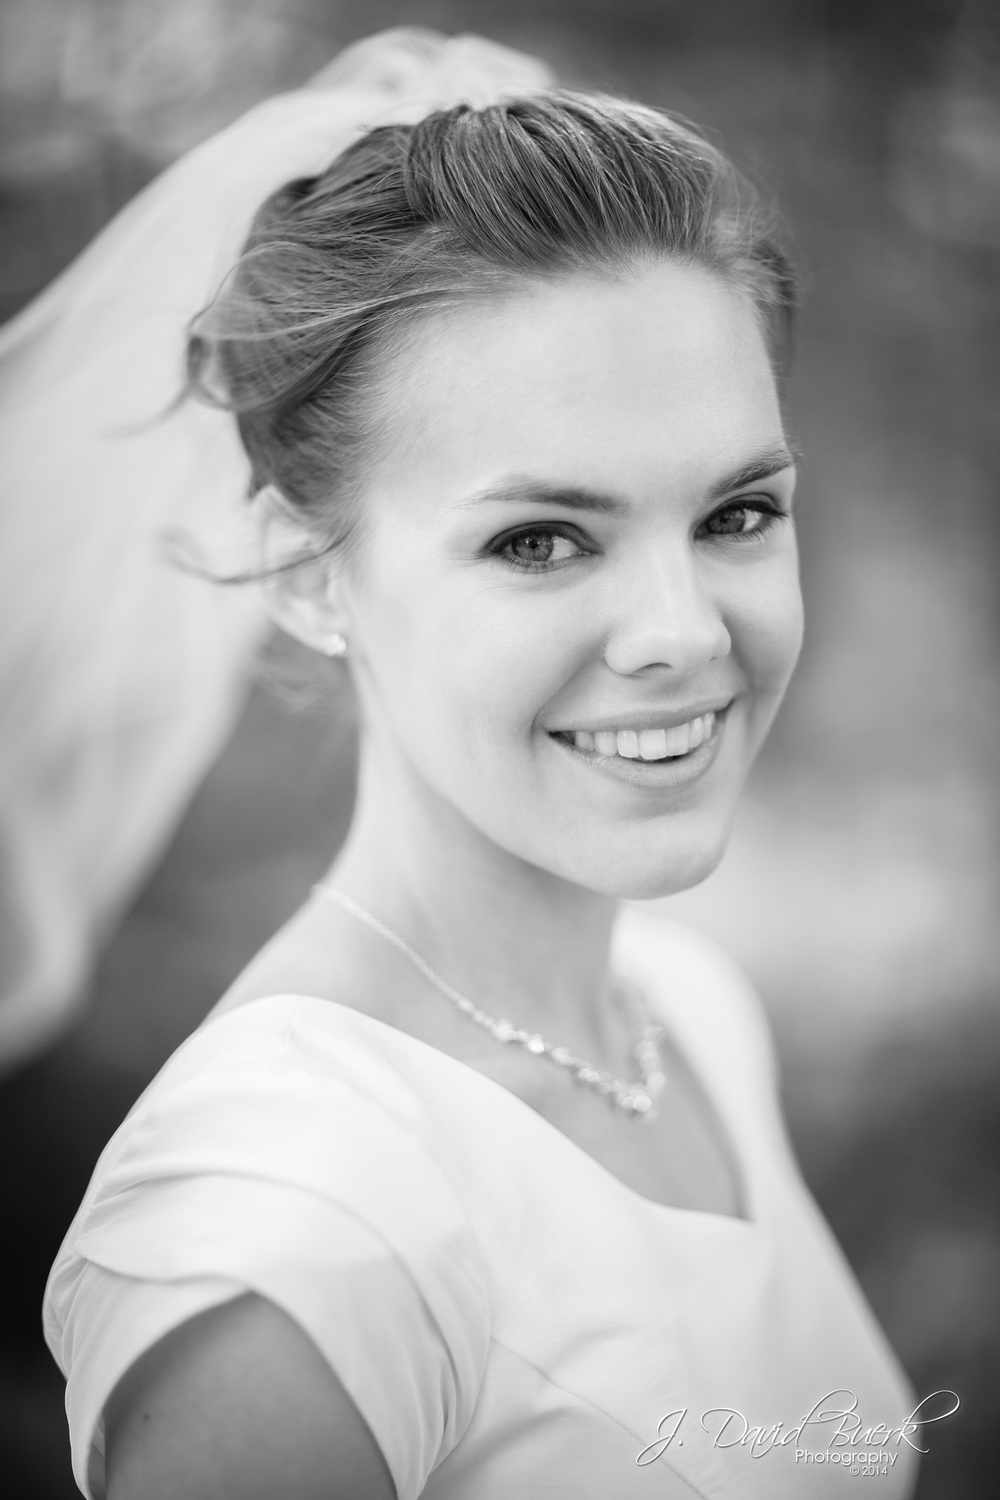 A bride smiles just before her wedding at the Washington, DC LDS Temple.